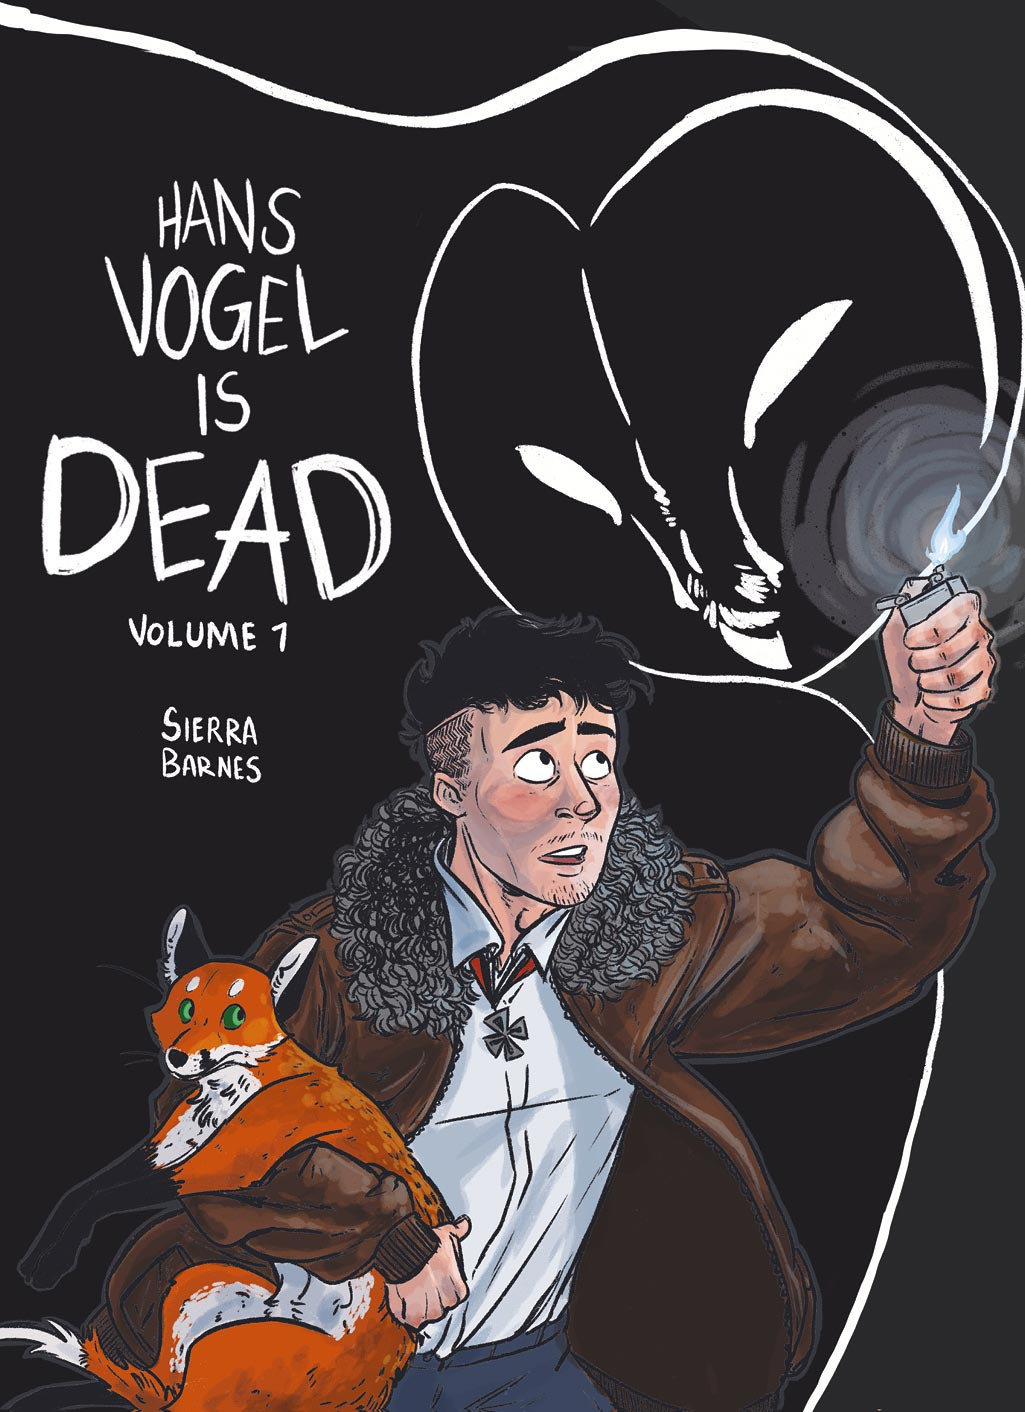 Cover to graphic novel Hans Vogel is Dead Volume 1 by Sierra Barnes